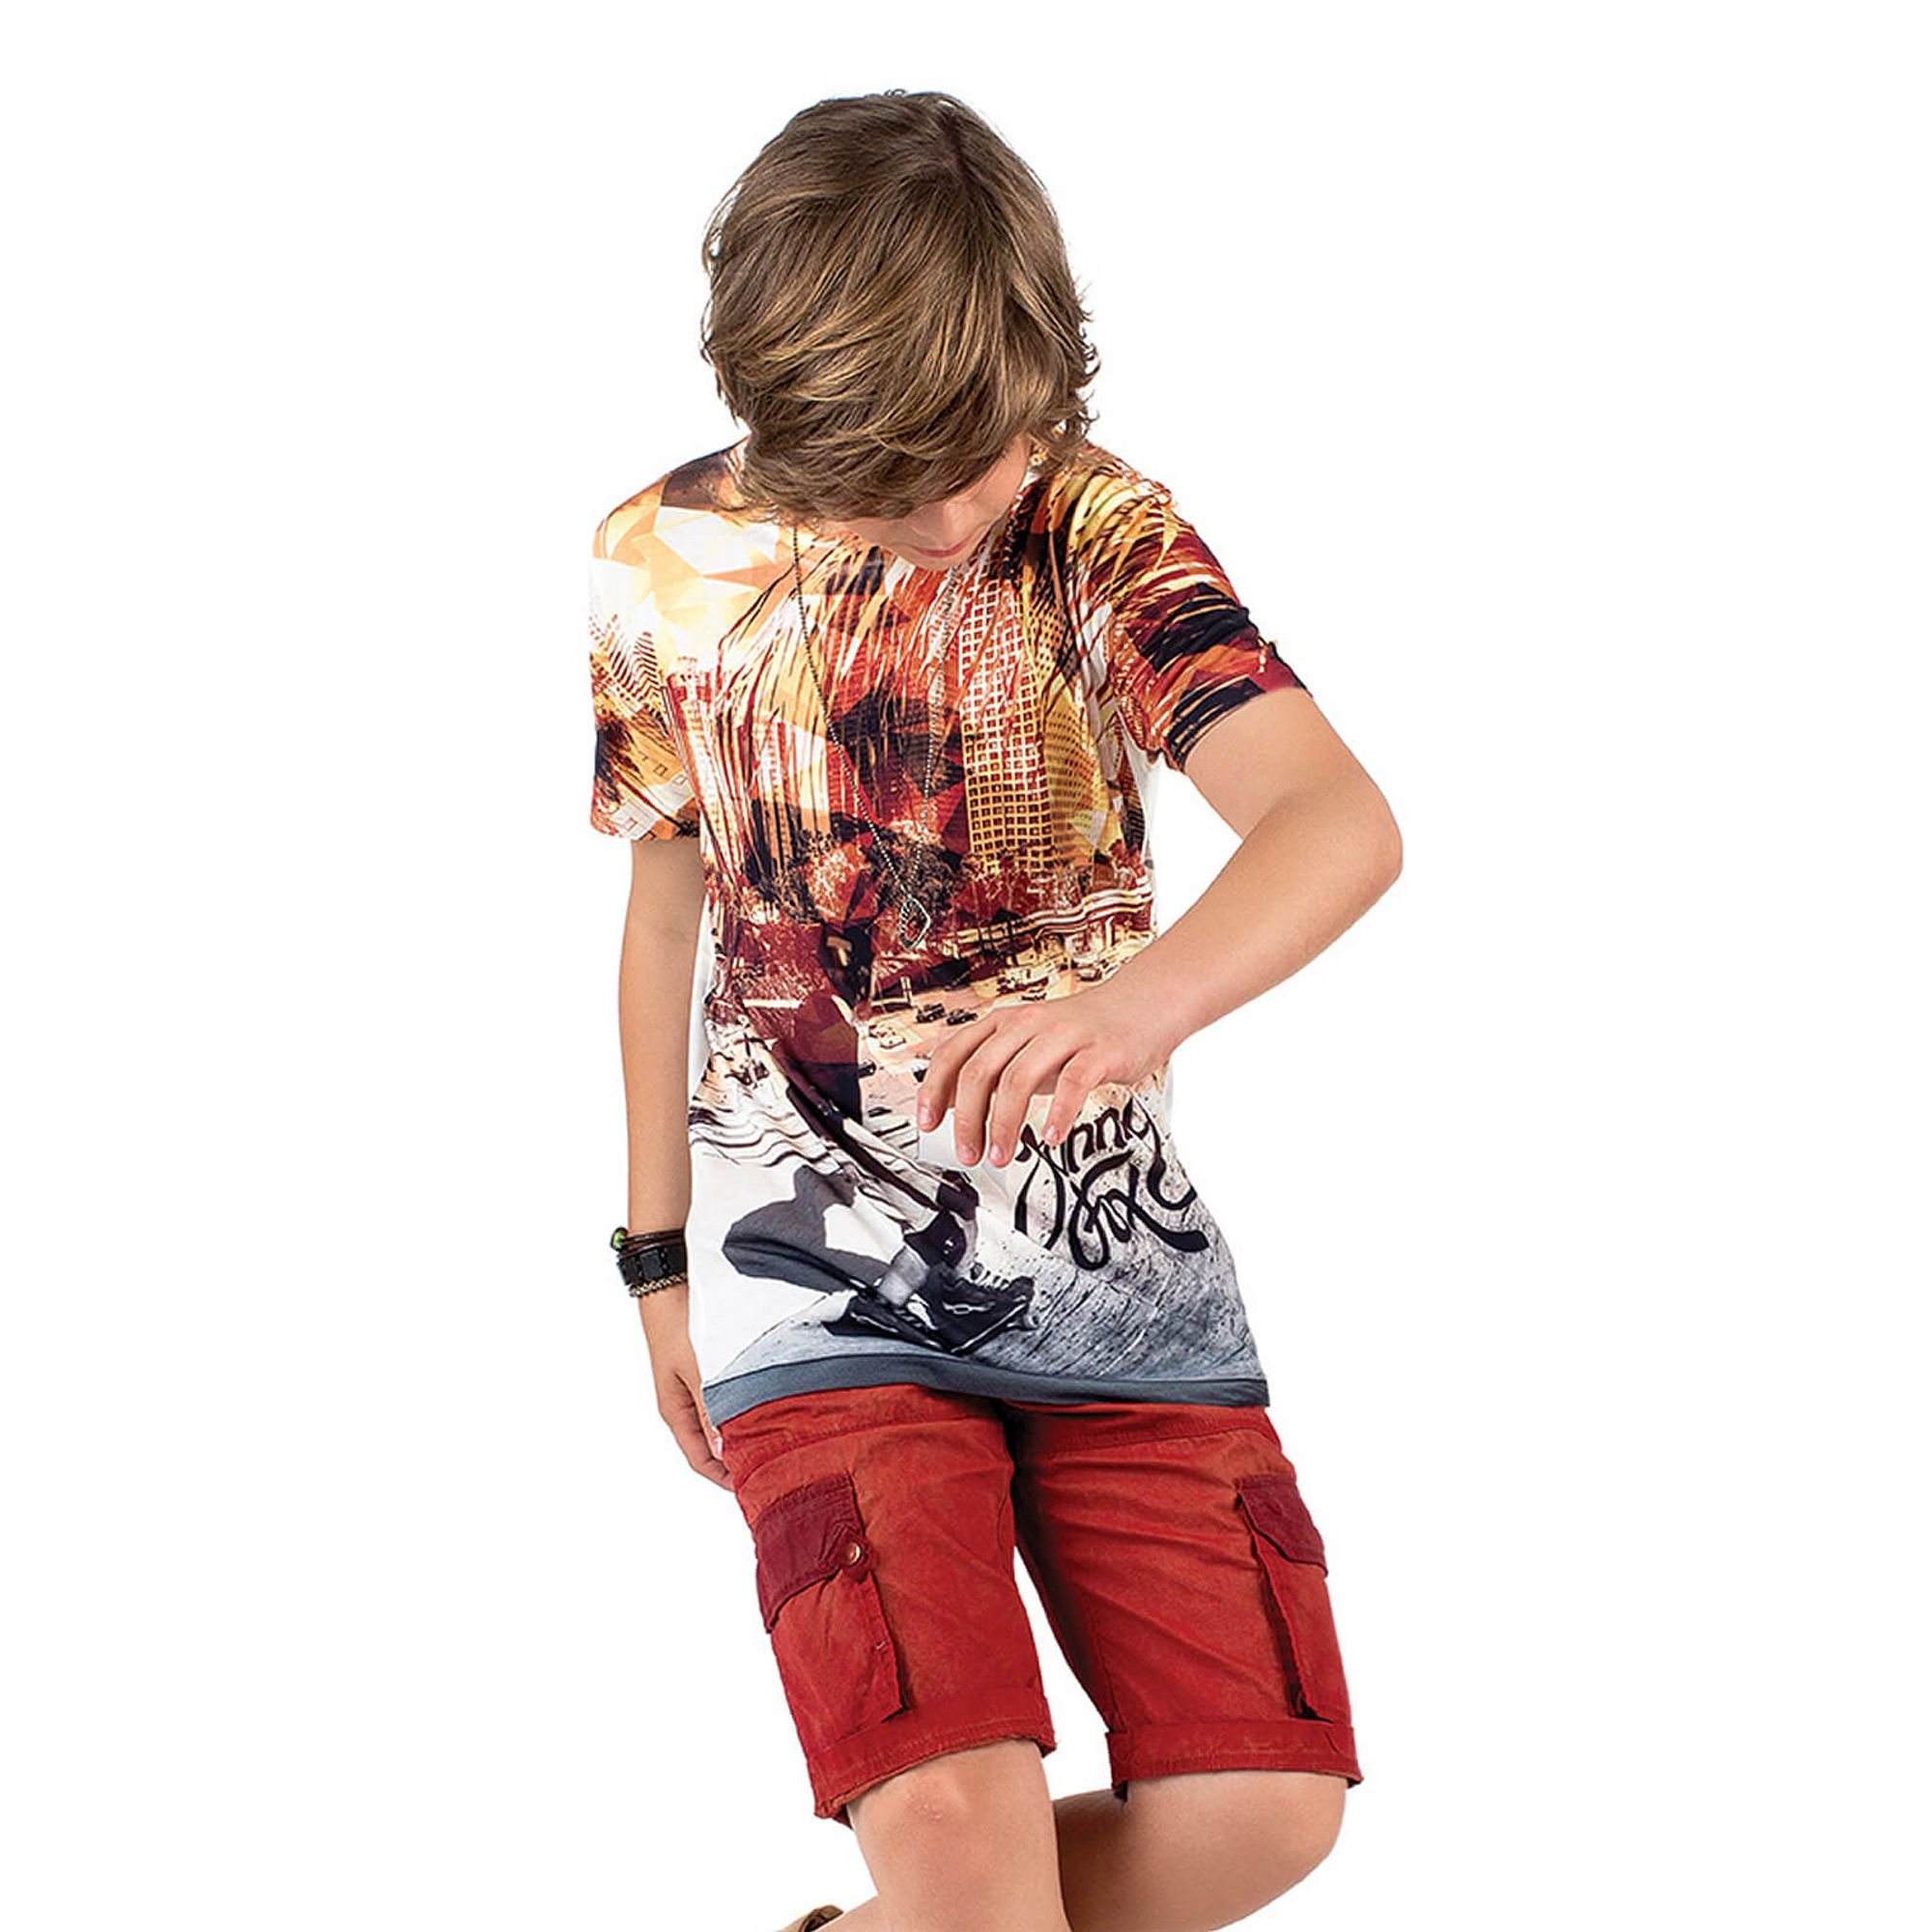 conjunto-menino-camiseta-skate-sublimada-e-bermuda-terracota-johnny-fox